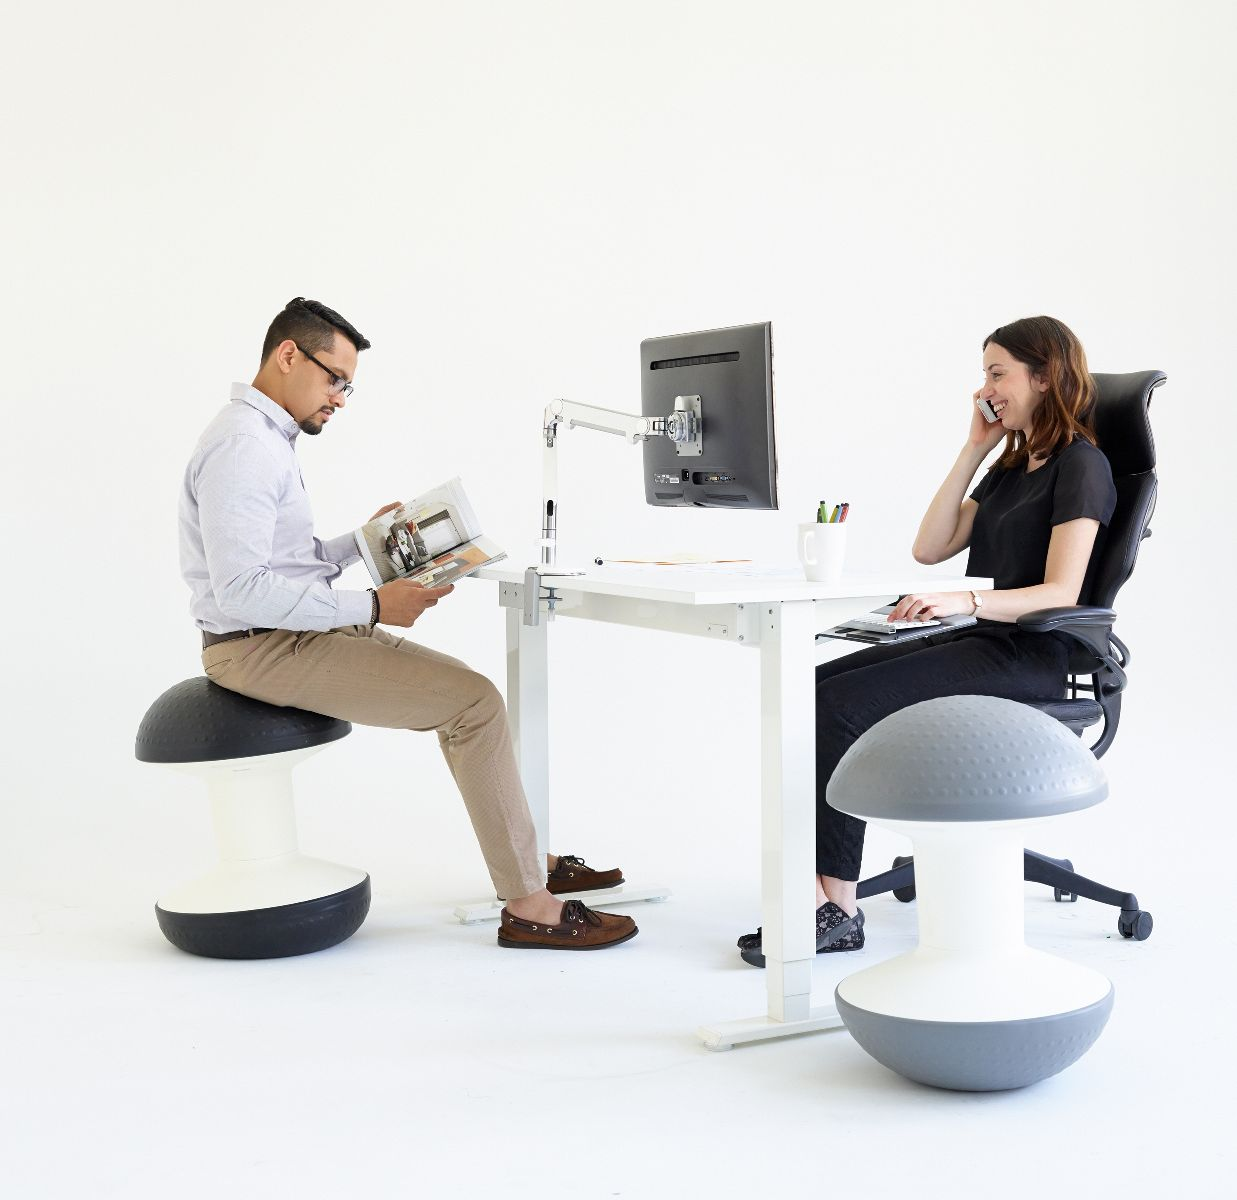 posture chair demo bean bag chairs cheap walmart ballo stool active sitting innovative ball humanscale res